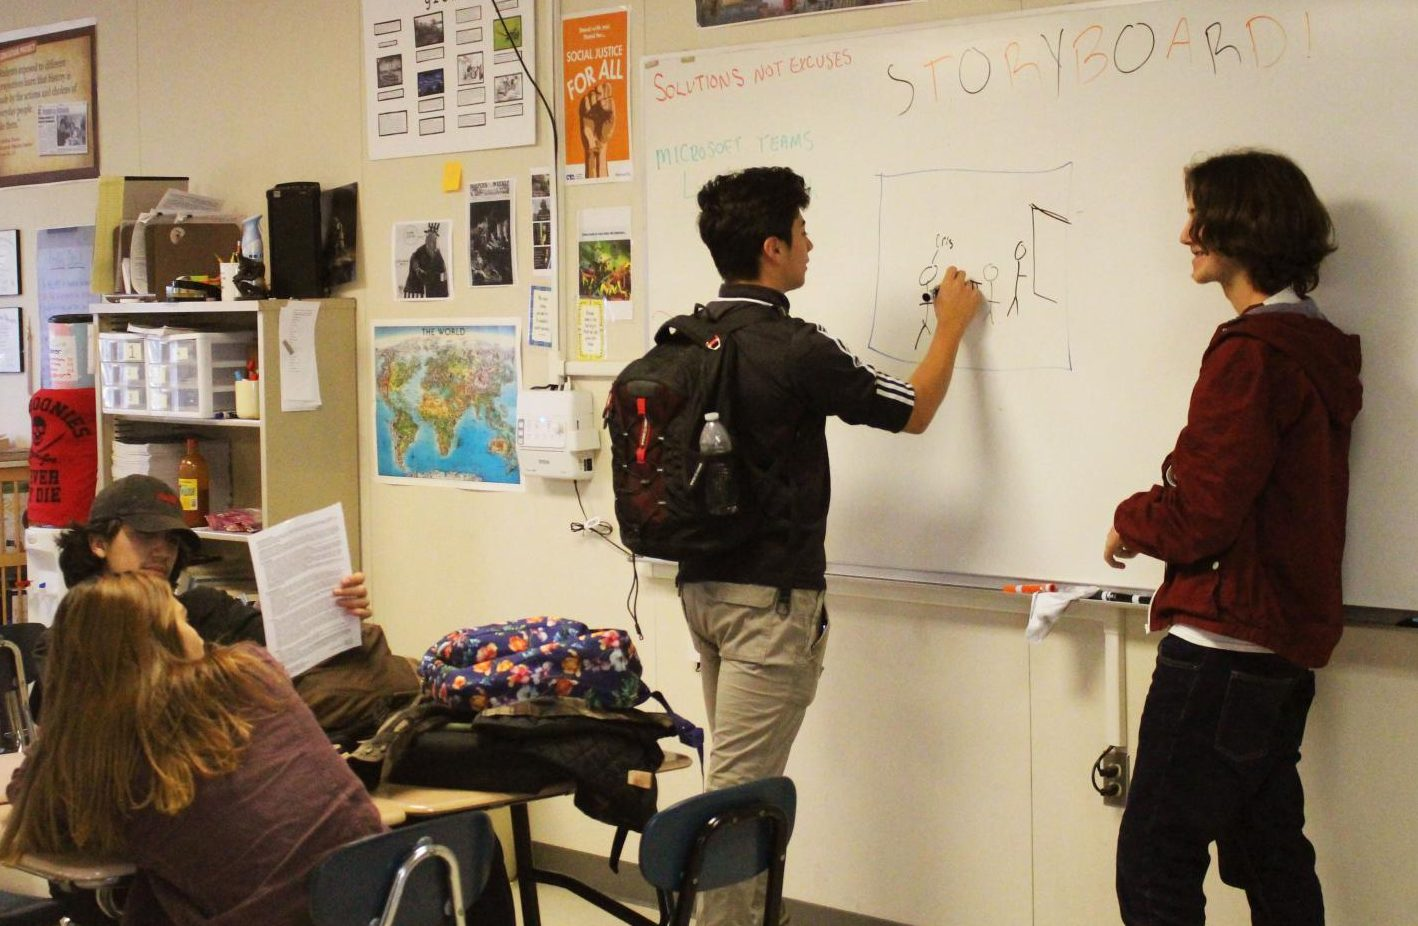 Seniors Regino Bernal and Robby Trammell sketch storyboard ideas. Photo by Cristopher Marin.